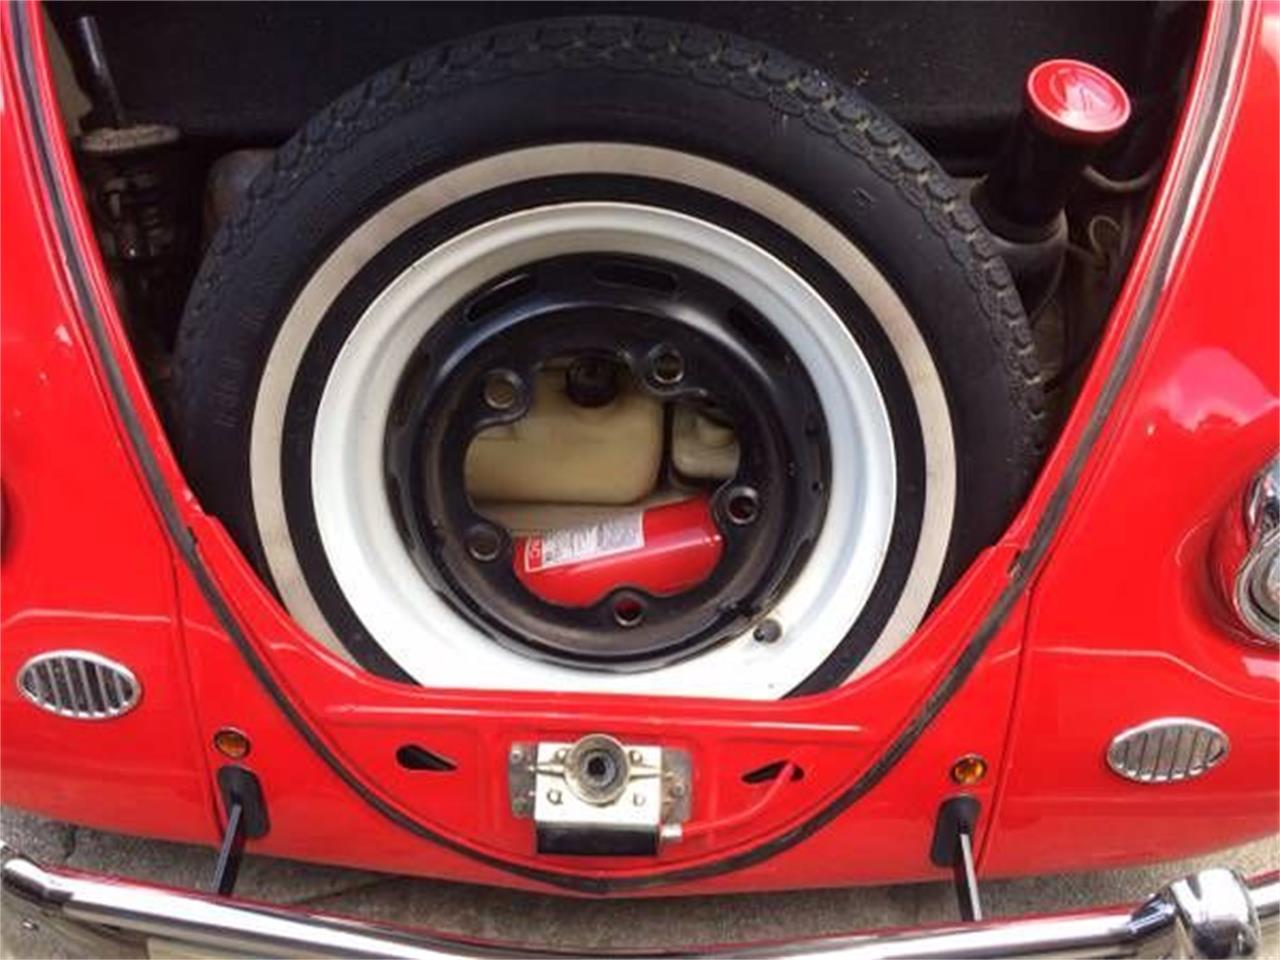 1967 Volkswagen Beetle for sale in Cadillac, MI – photo 2